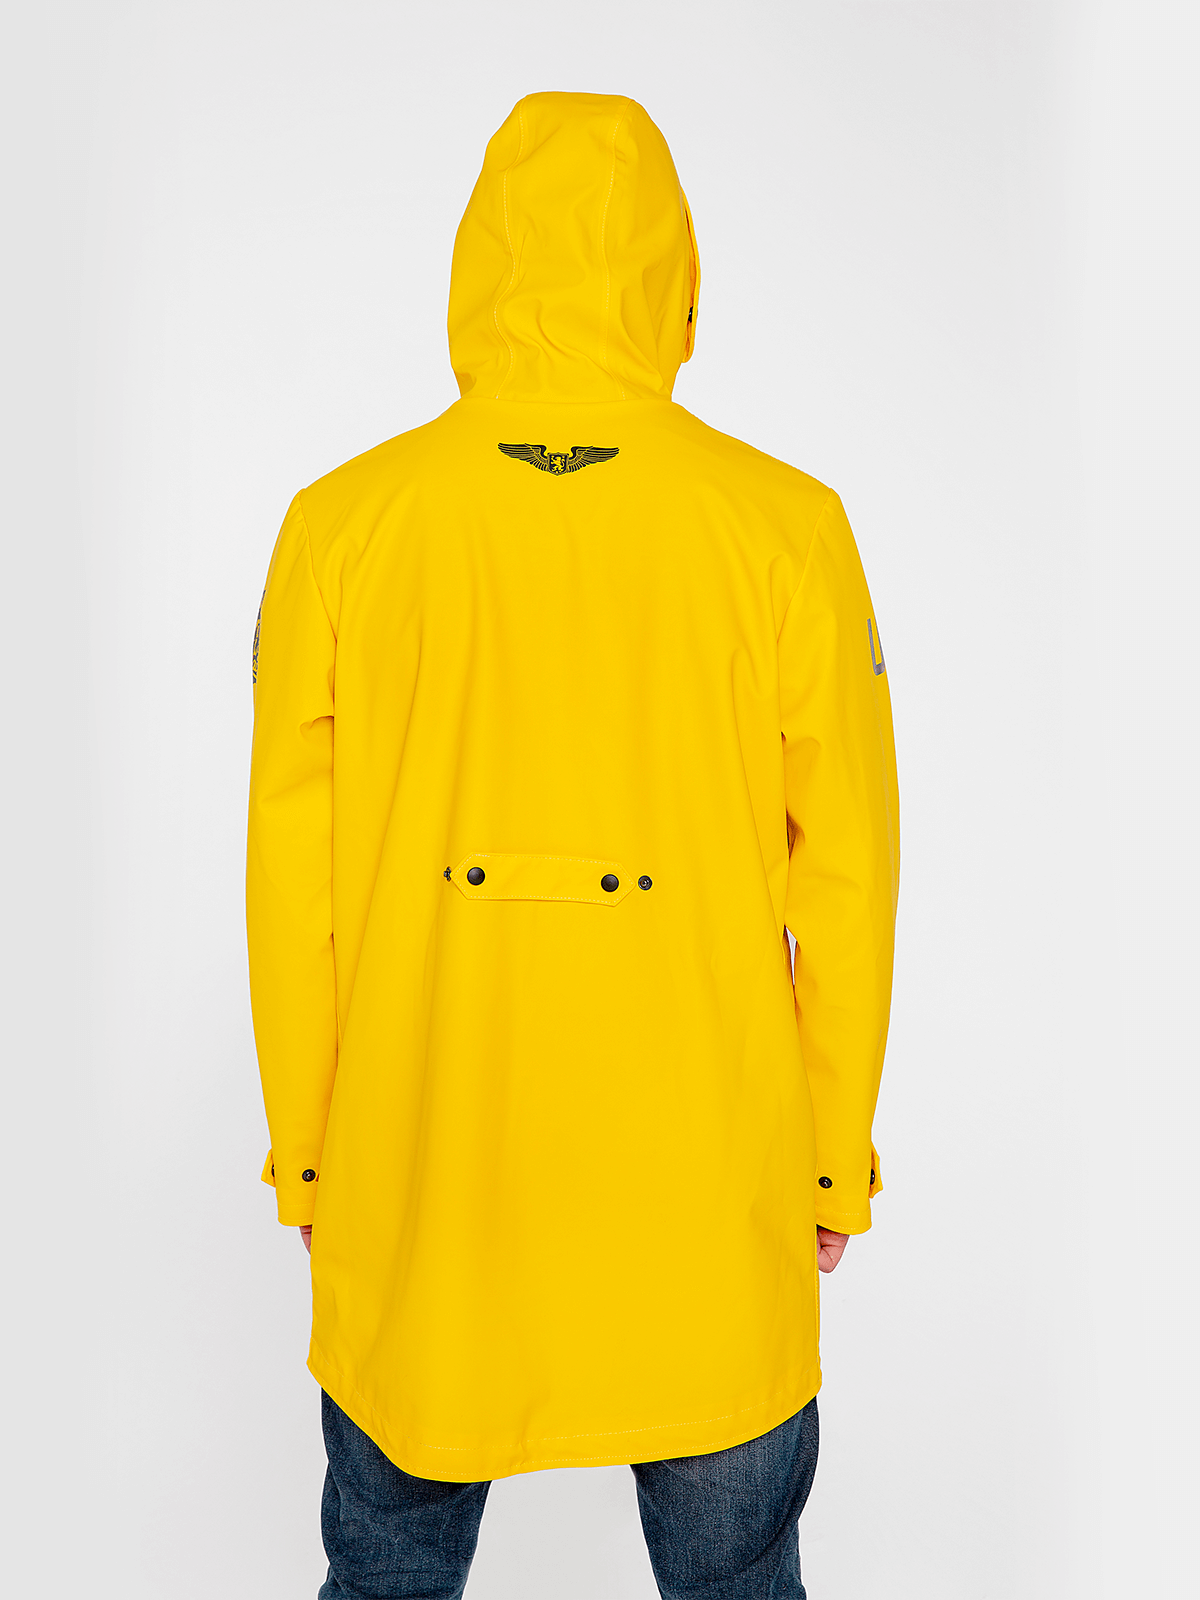 Men's Raincoat From Lviv With Rain. Color yellow.  Back lining: smooth natural material, fairly stretchable (knitwear – 95% cotton, 5 spandex) Lining in the sleeves: not stretchable, makes it possible to easily put on the jacket (shirt batiste– 100%) – 5 pockets (1 inside pocket); – glued seams; – long enough to keep your trousers dry; – not chilled through; – plastic fastener; – metal snap buttons with a plastic cover; – bright color for you to be visible in dark time of the day, especially for drivers; – stripes – paracord 2m that can be dragged out fully from the hood for your needs; – total weight – 1200 g.